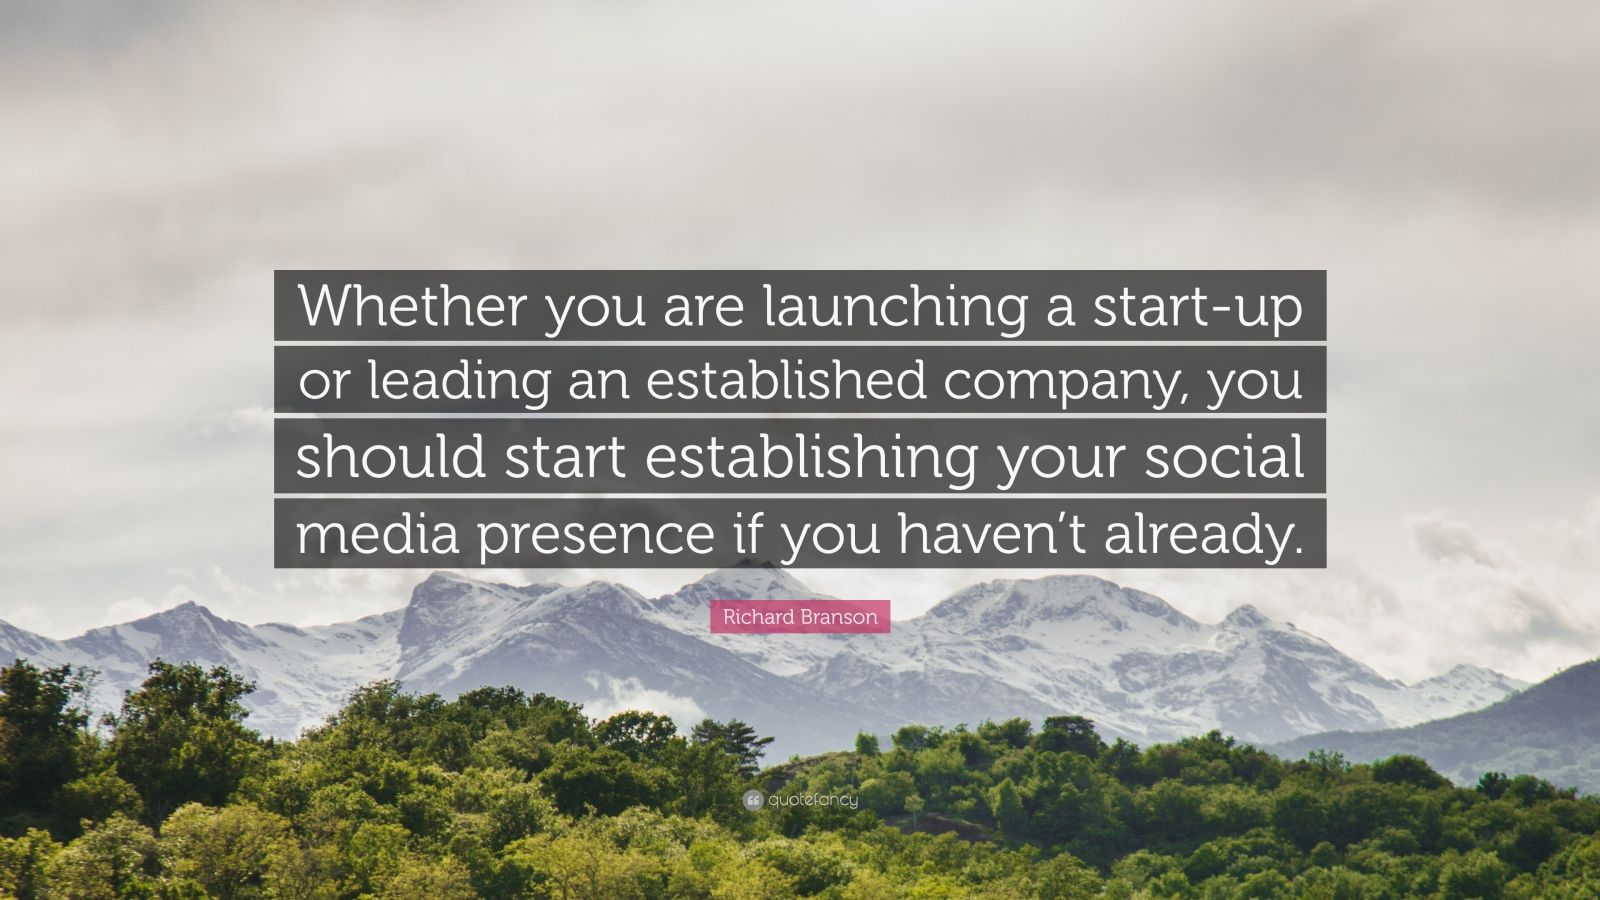 """Richard Branson Quote: """"Whether you are launching a start-up or leading an established company, you should start establishing your social media presence if you haven't already."""""""